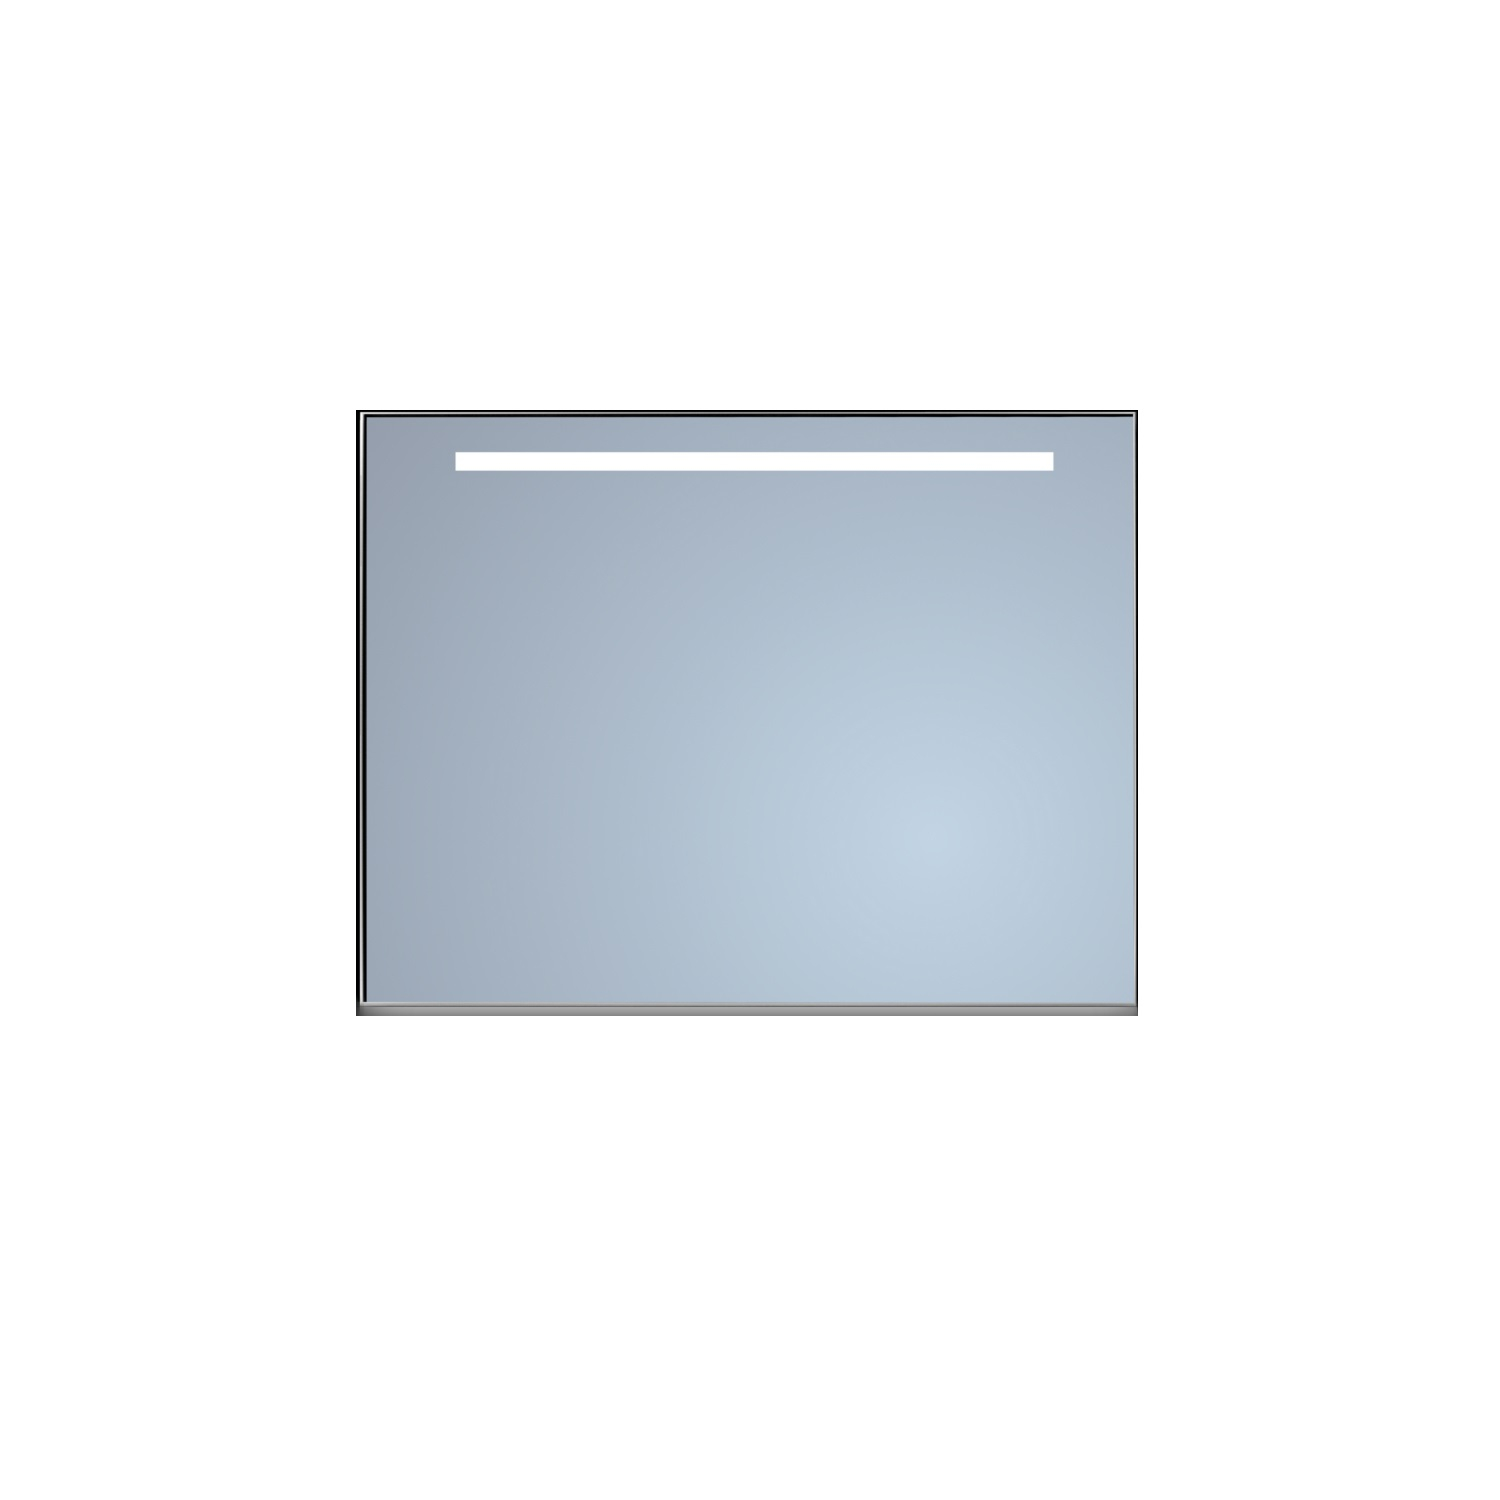 Badkamerspiegel Sanicare Q-Mirrors Ambiance en 'Cold White' LED-verlichting 70x85x3,5 Alu Omlijsting